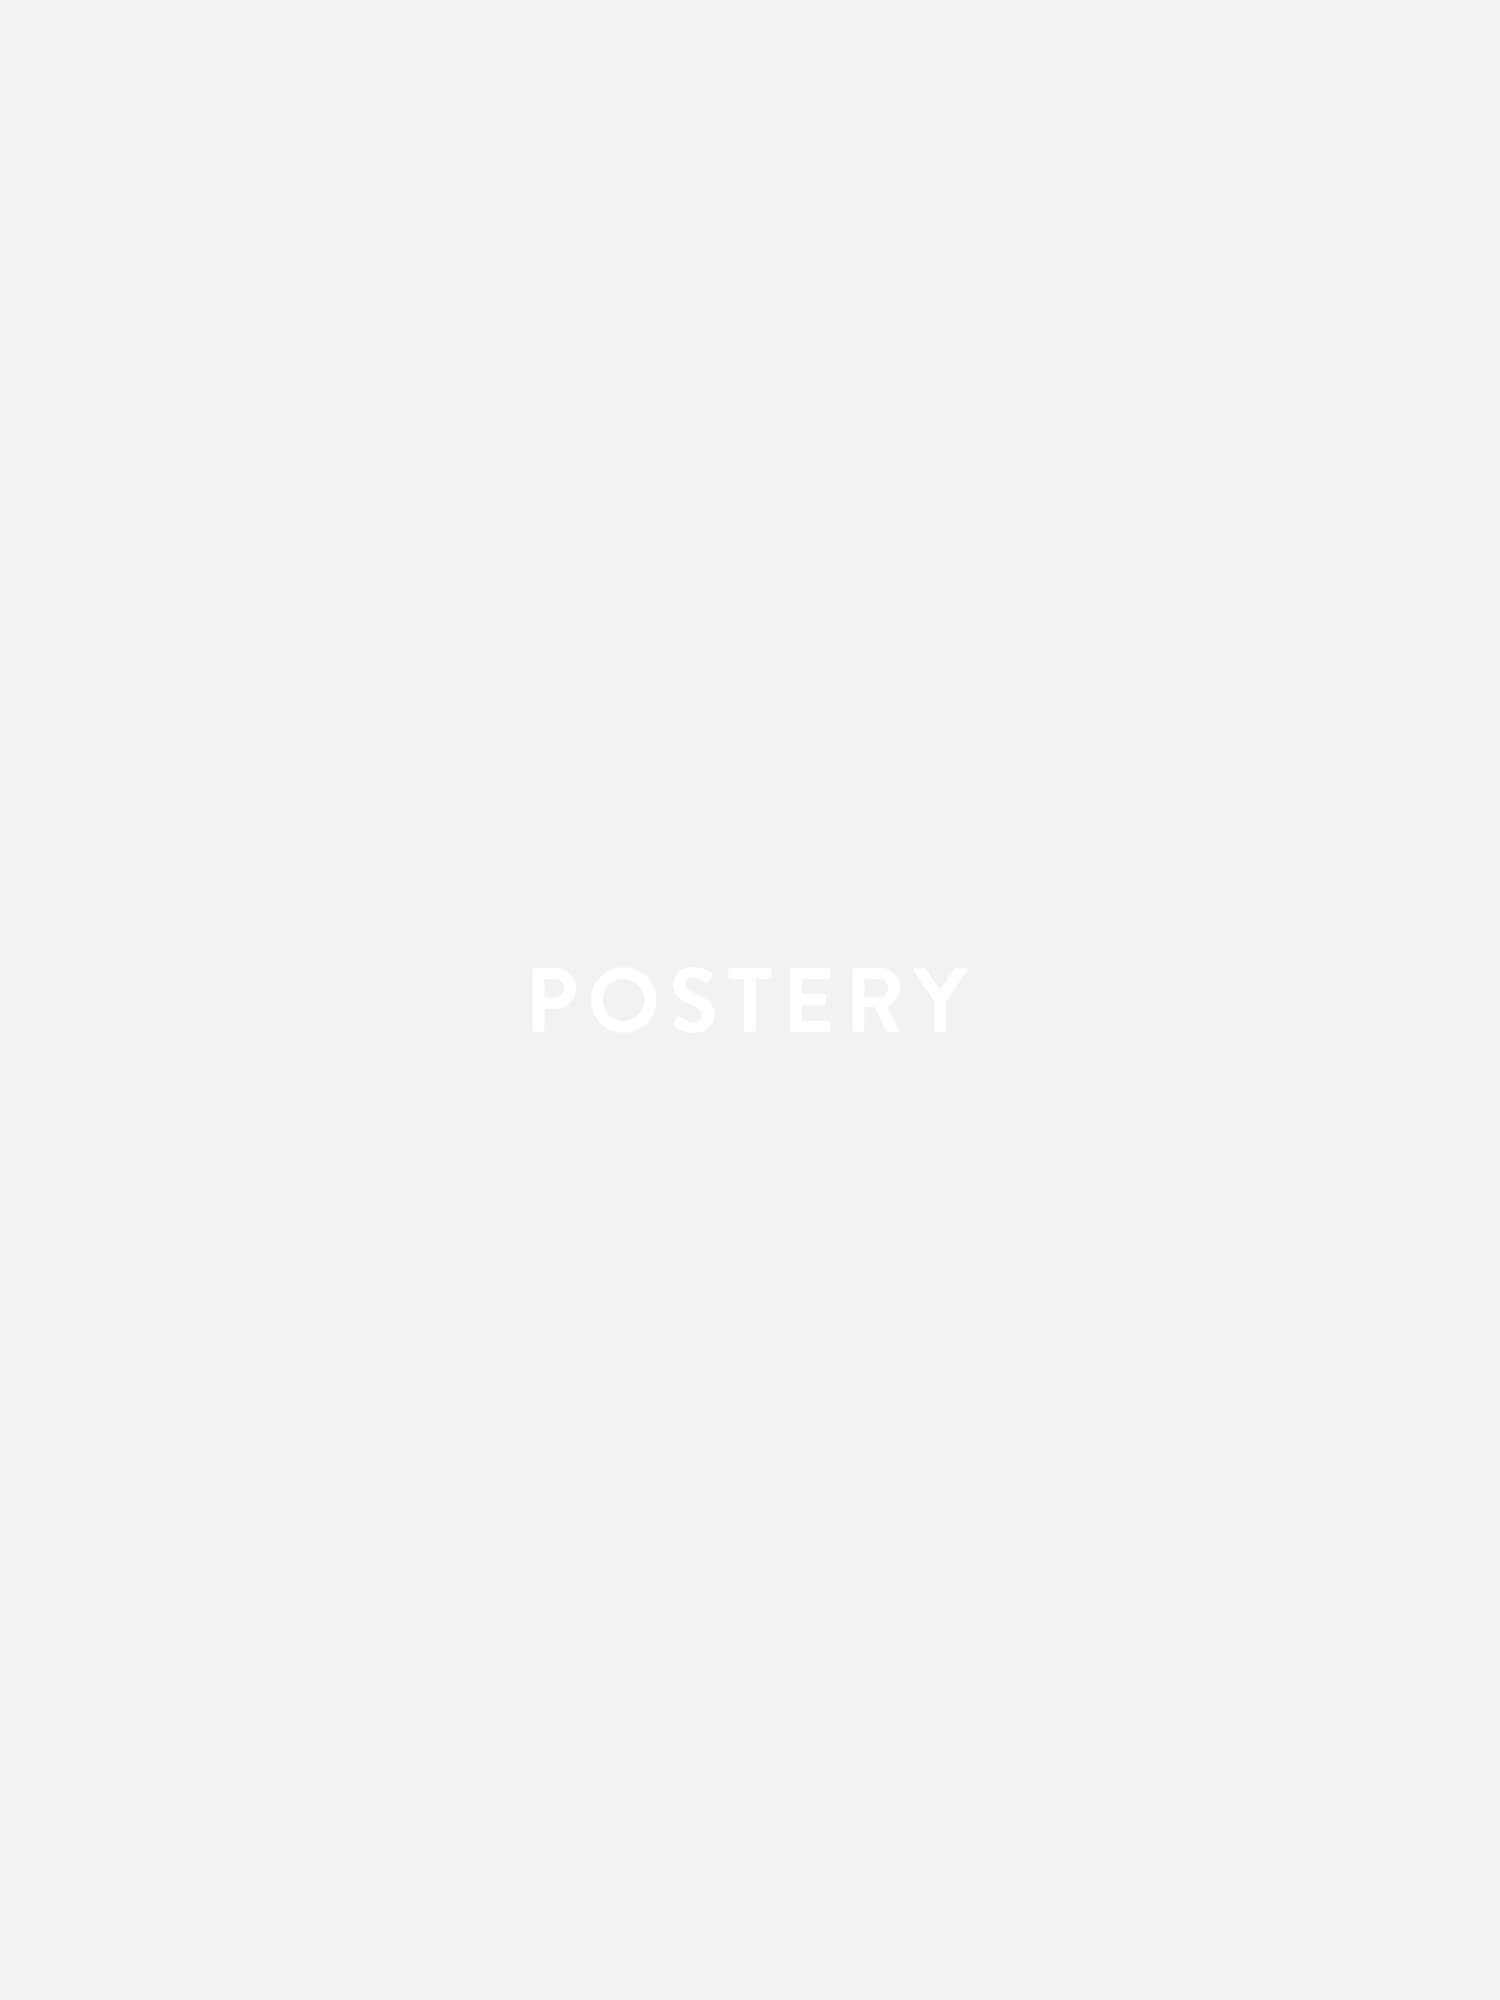 Yellow Stairs Poster